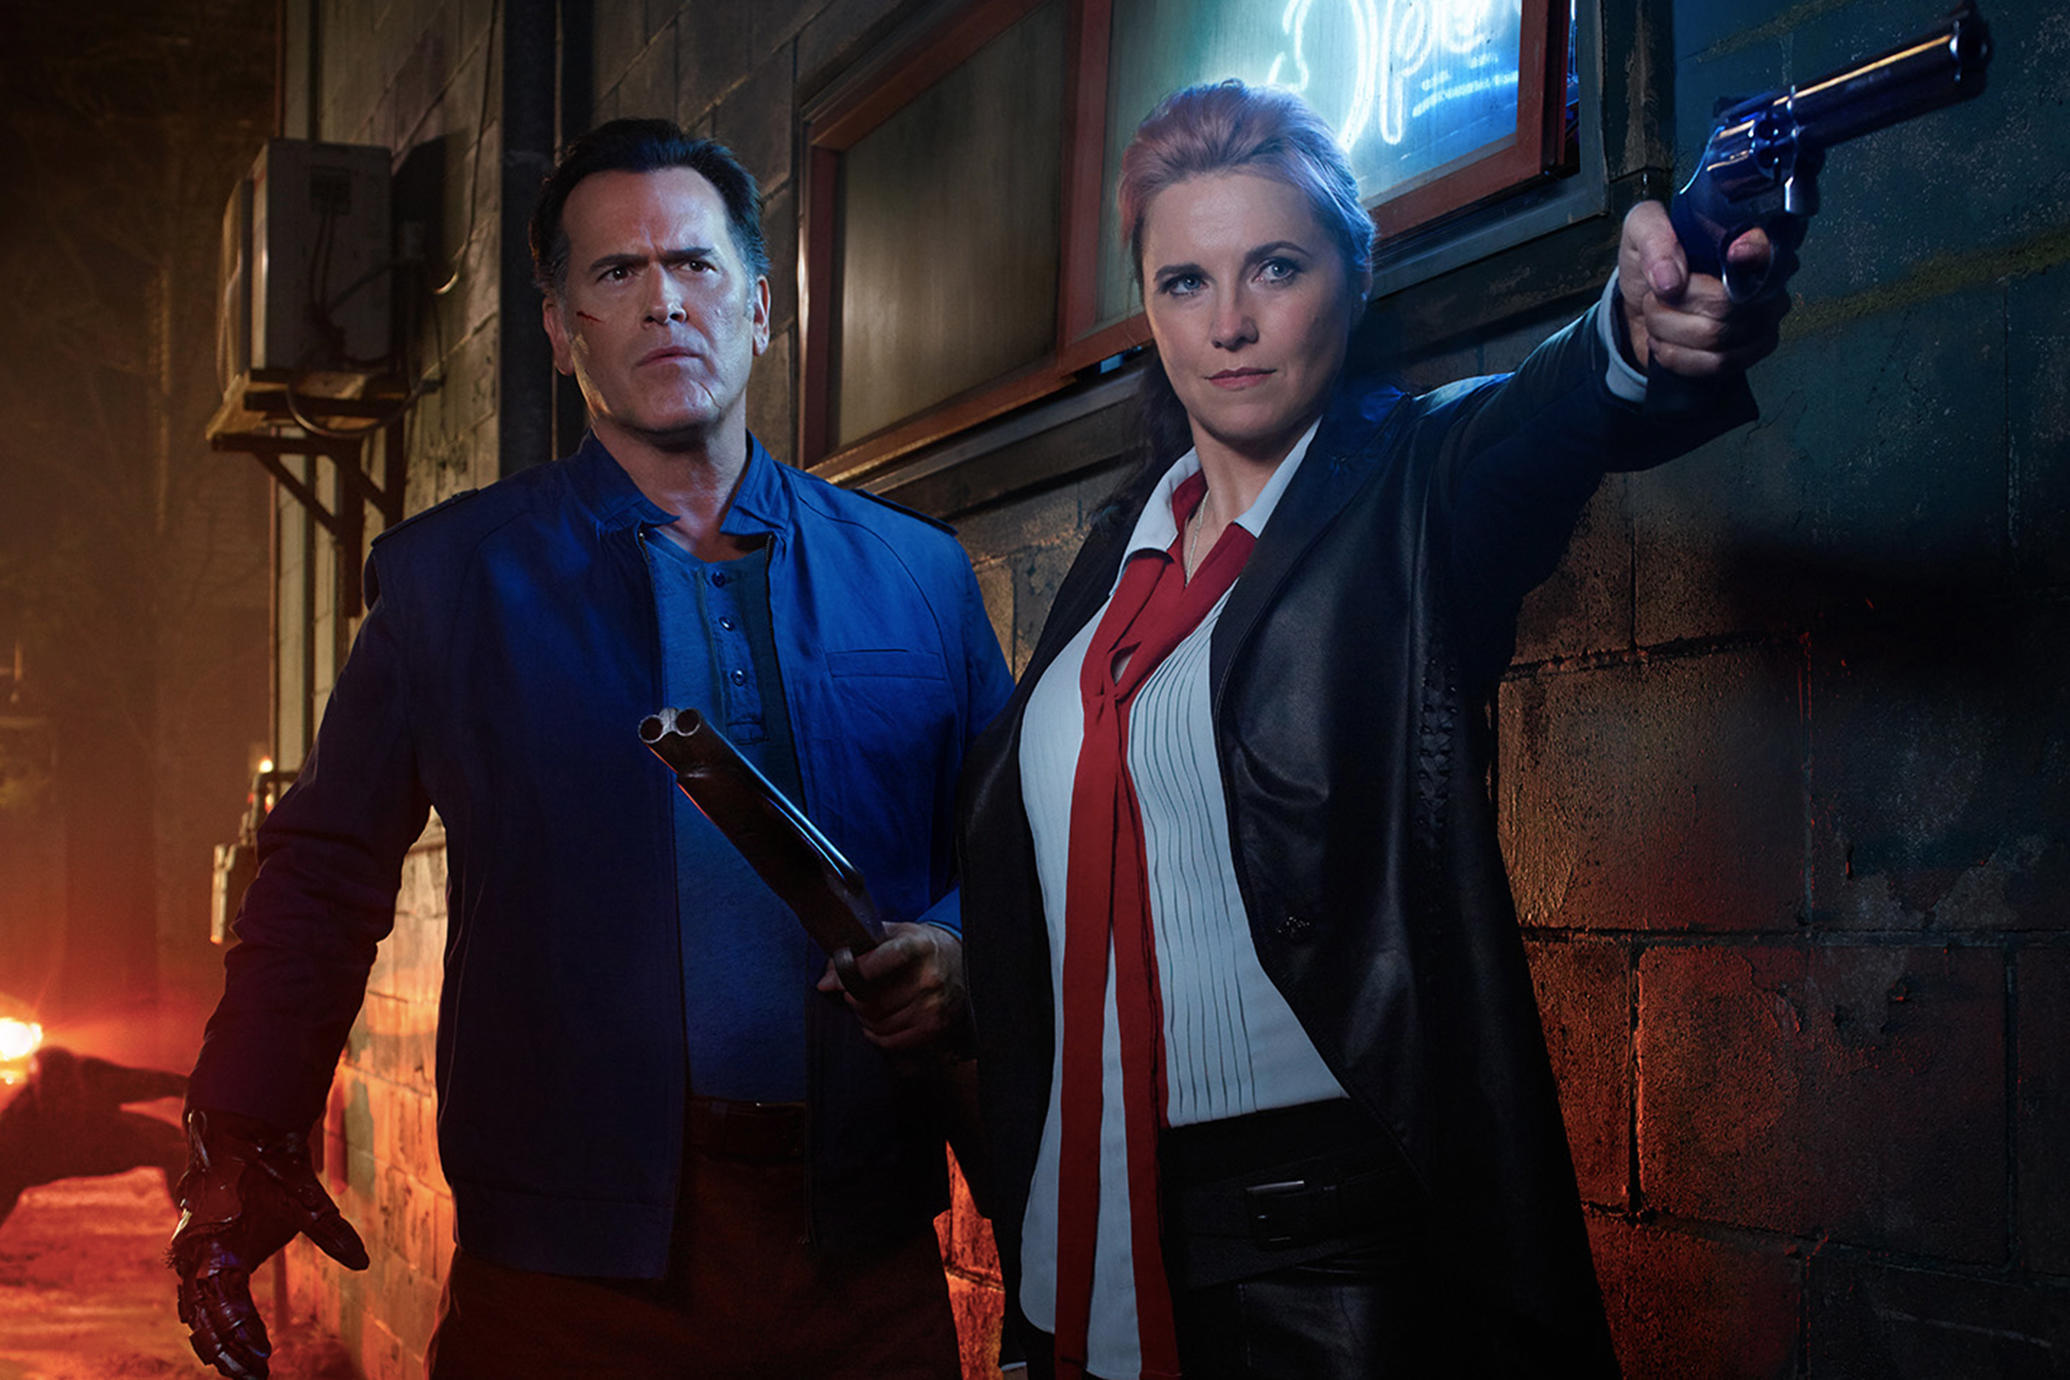 160801-news-ash-vs-evil-dead-bruce-campbell-lucy-lawless